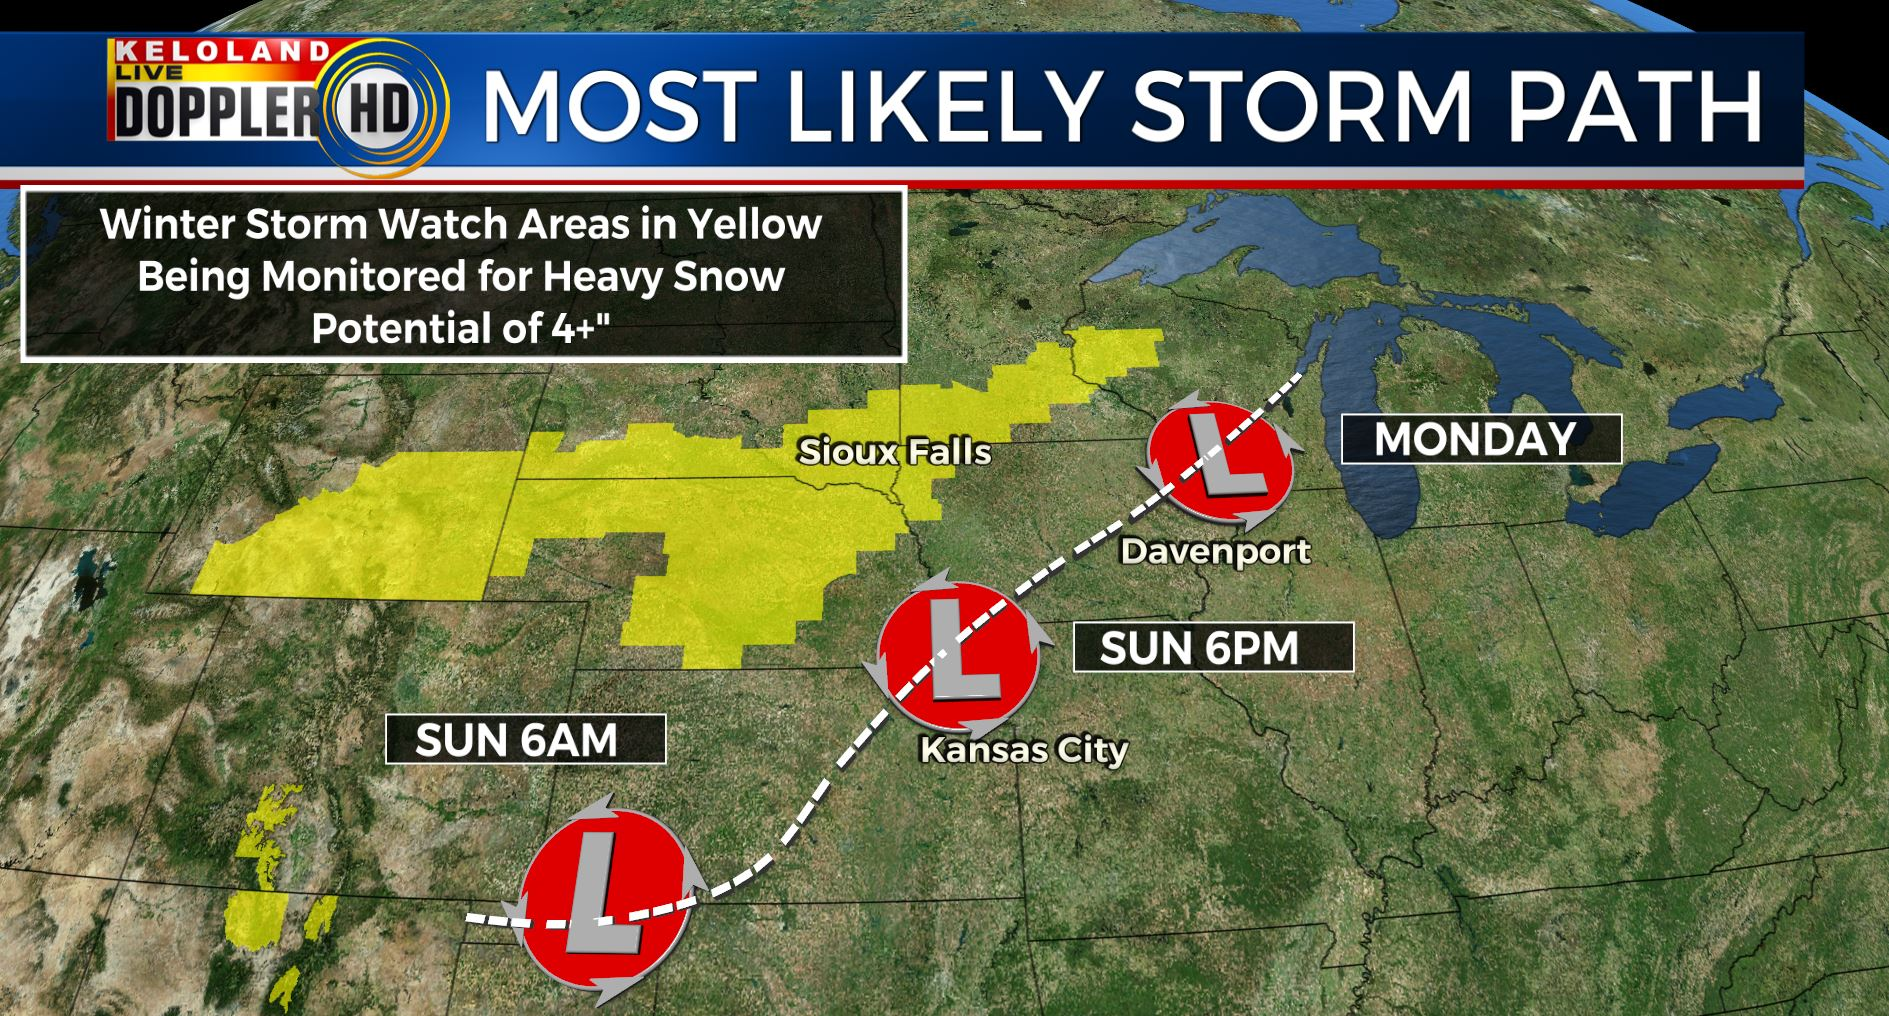 Storm Center Update Friday AM January 19th